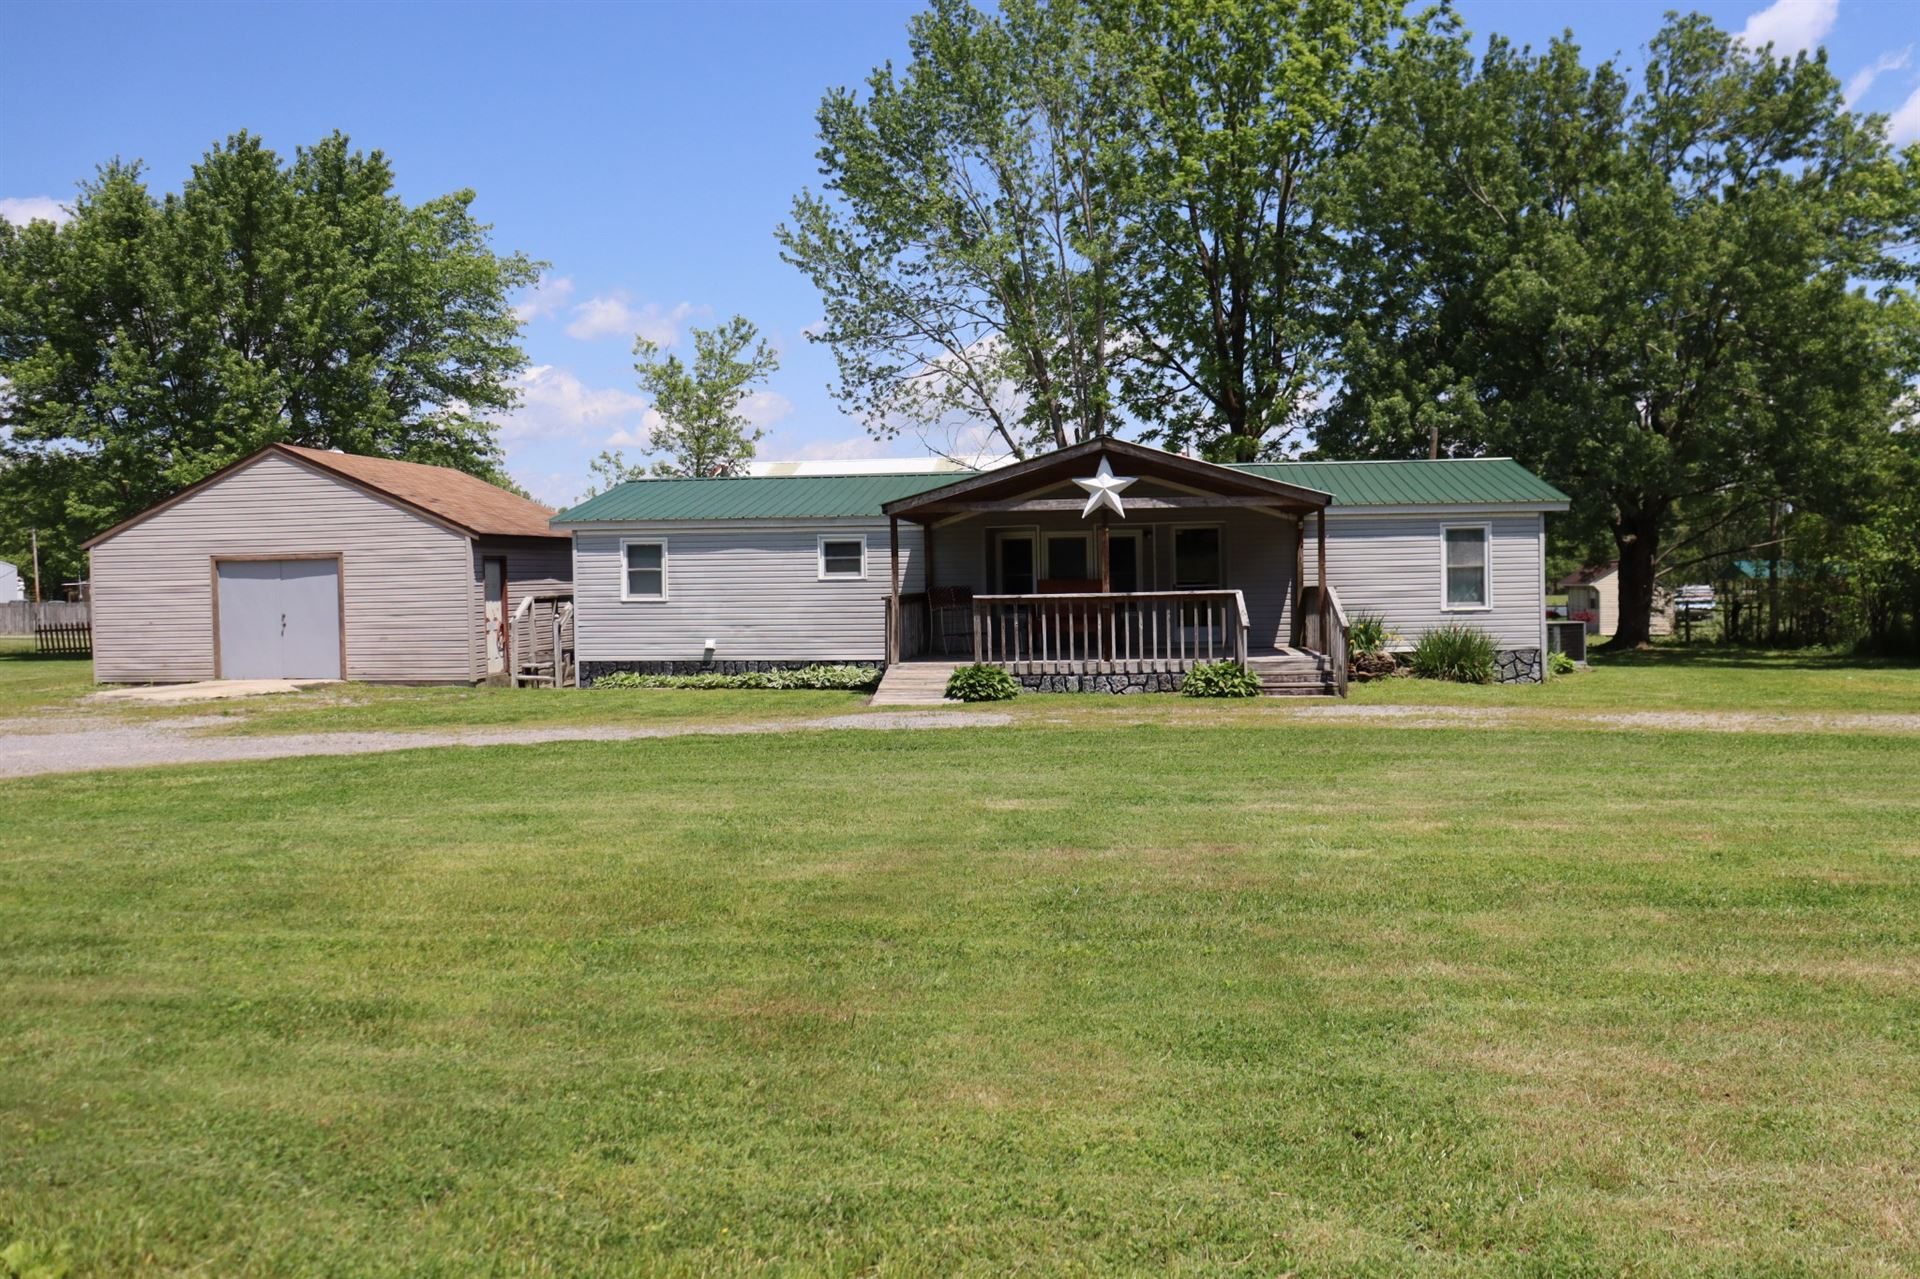 260 Page Dr, Smithville, TN 37166 - MLS#: 2251666